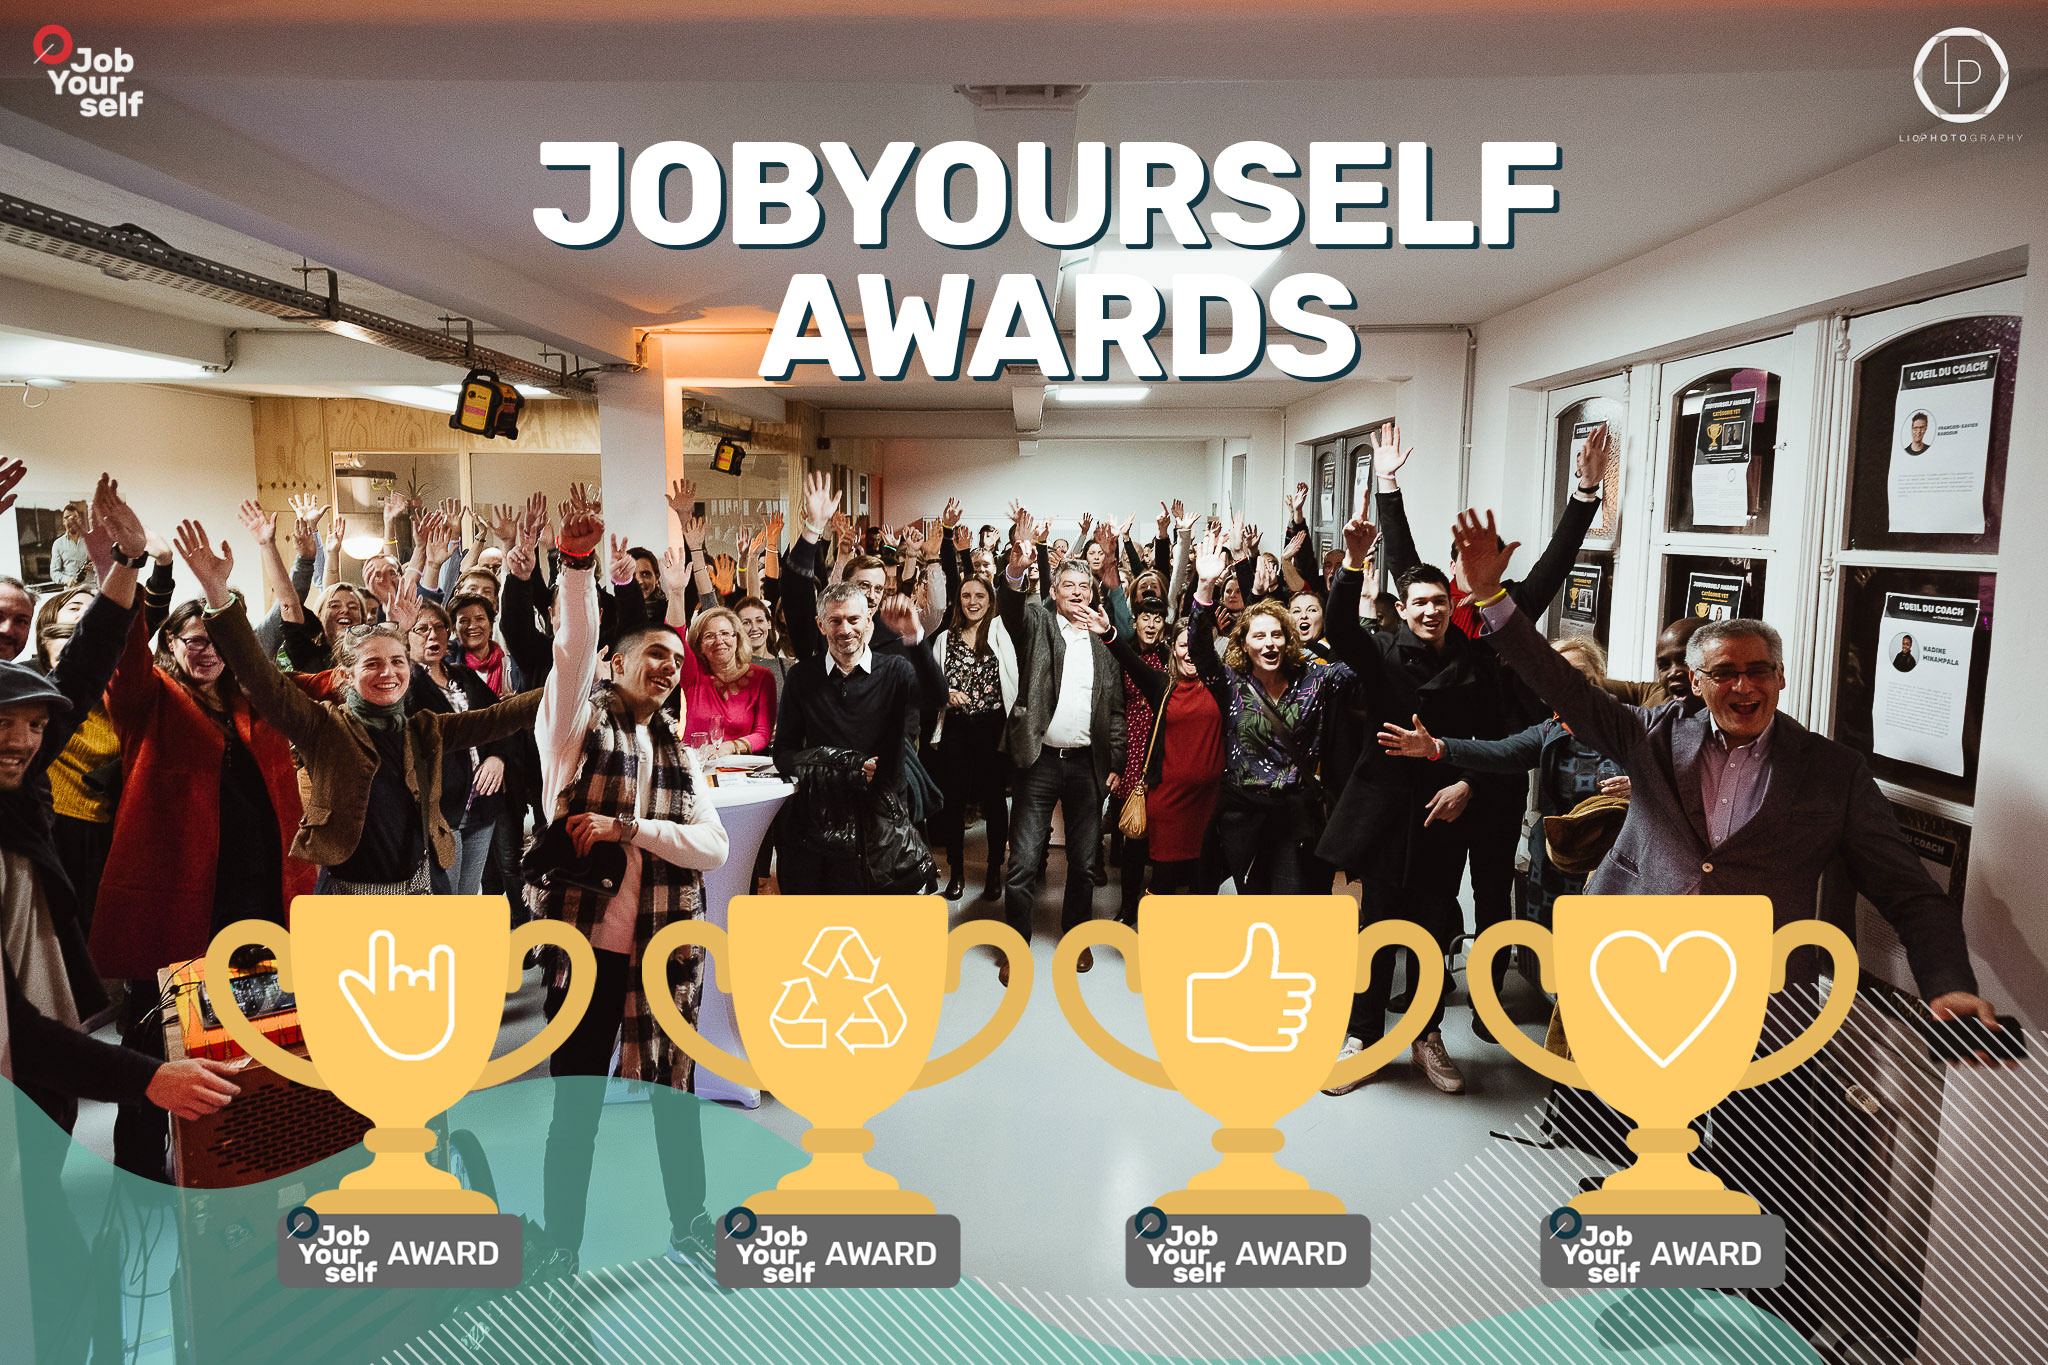 JOBYOURSELF AWARDS